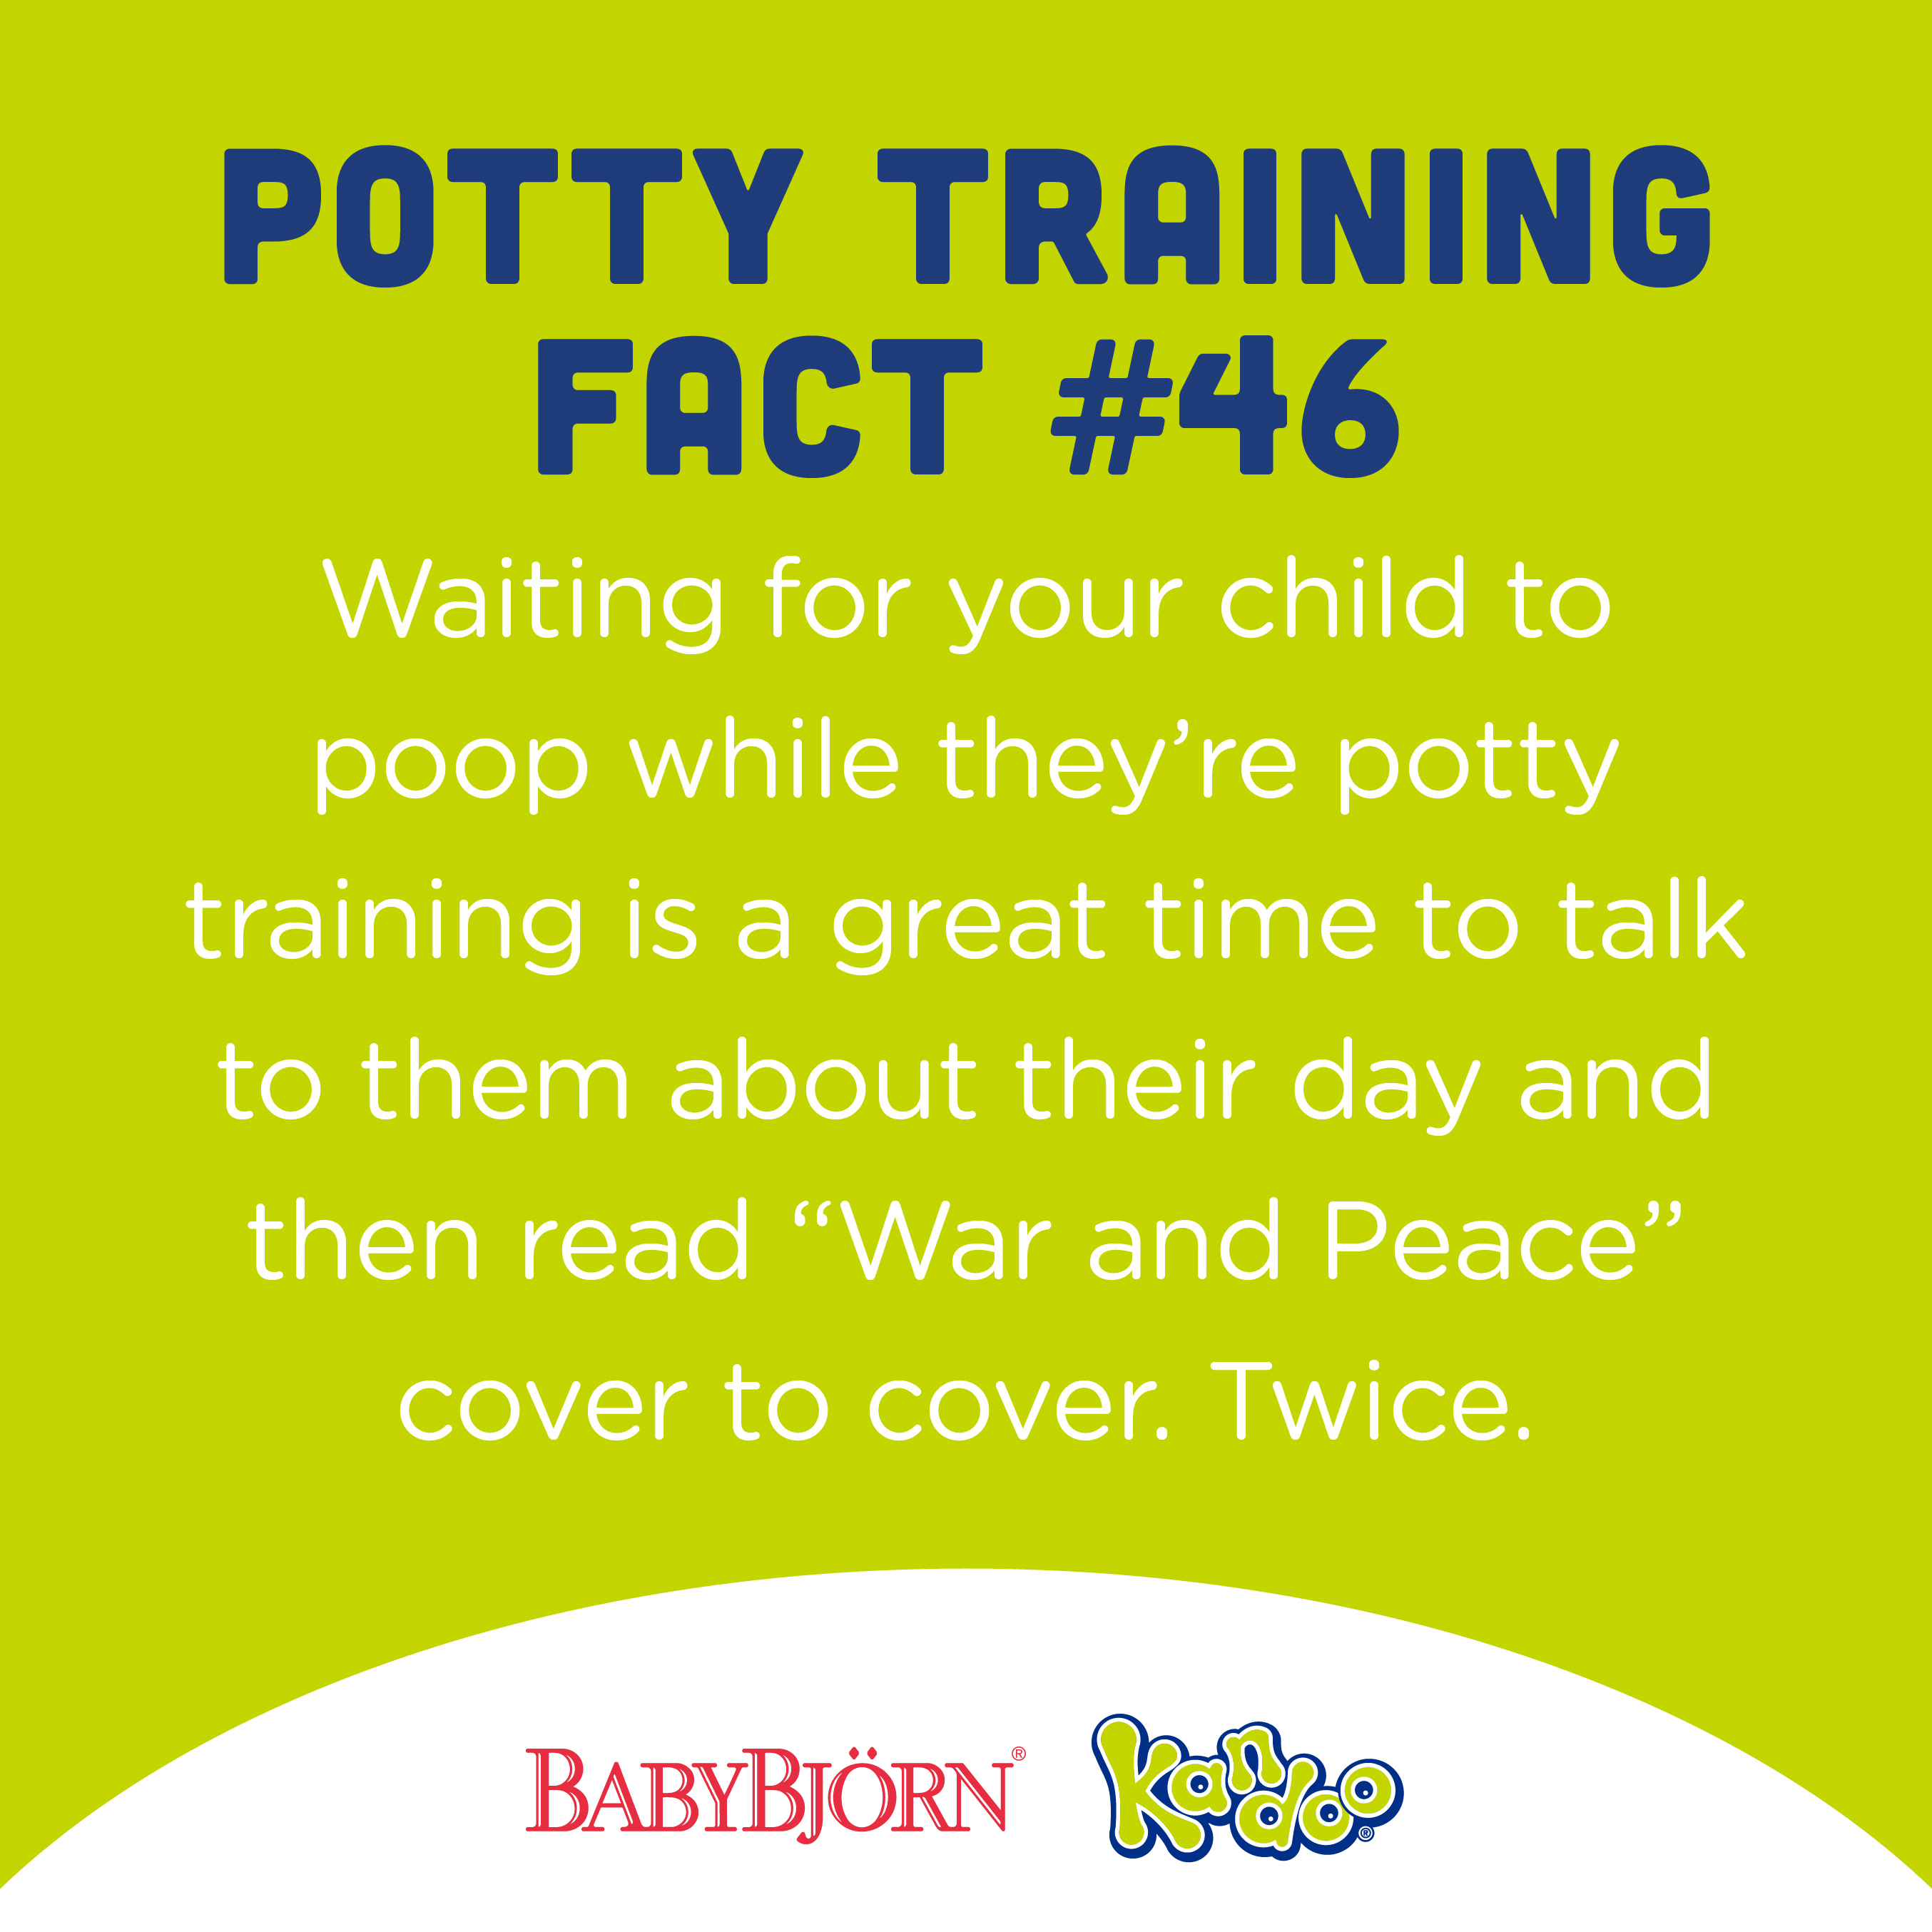 Potty Training: When Your Child Won't Poop on the Potty